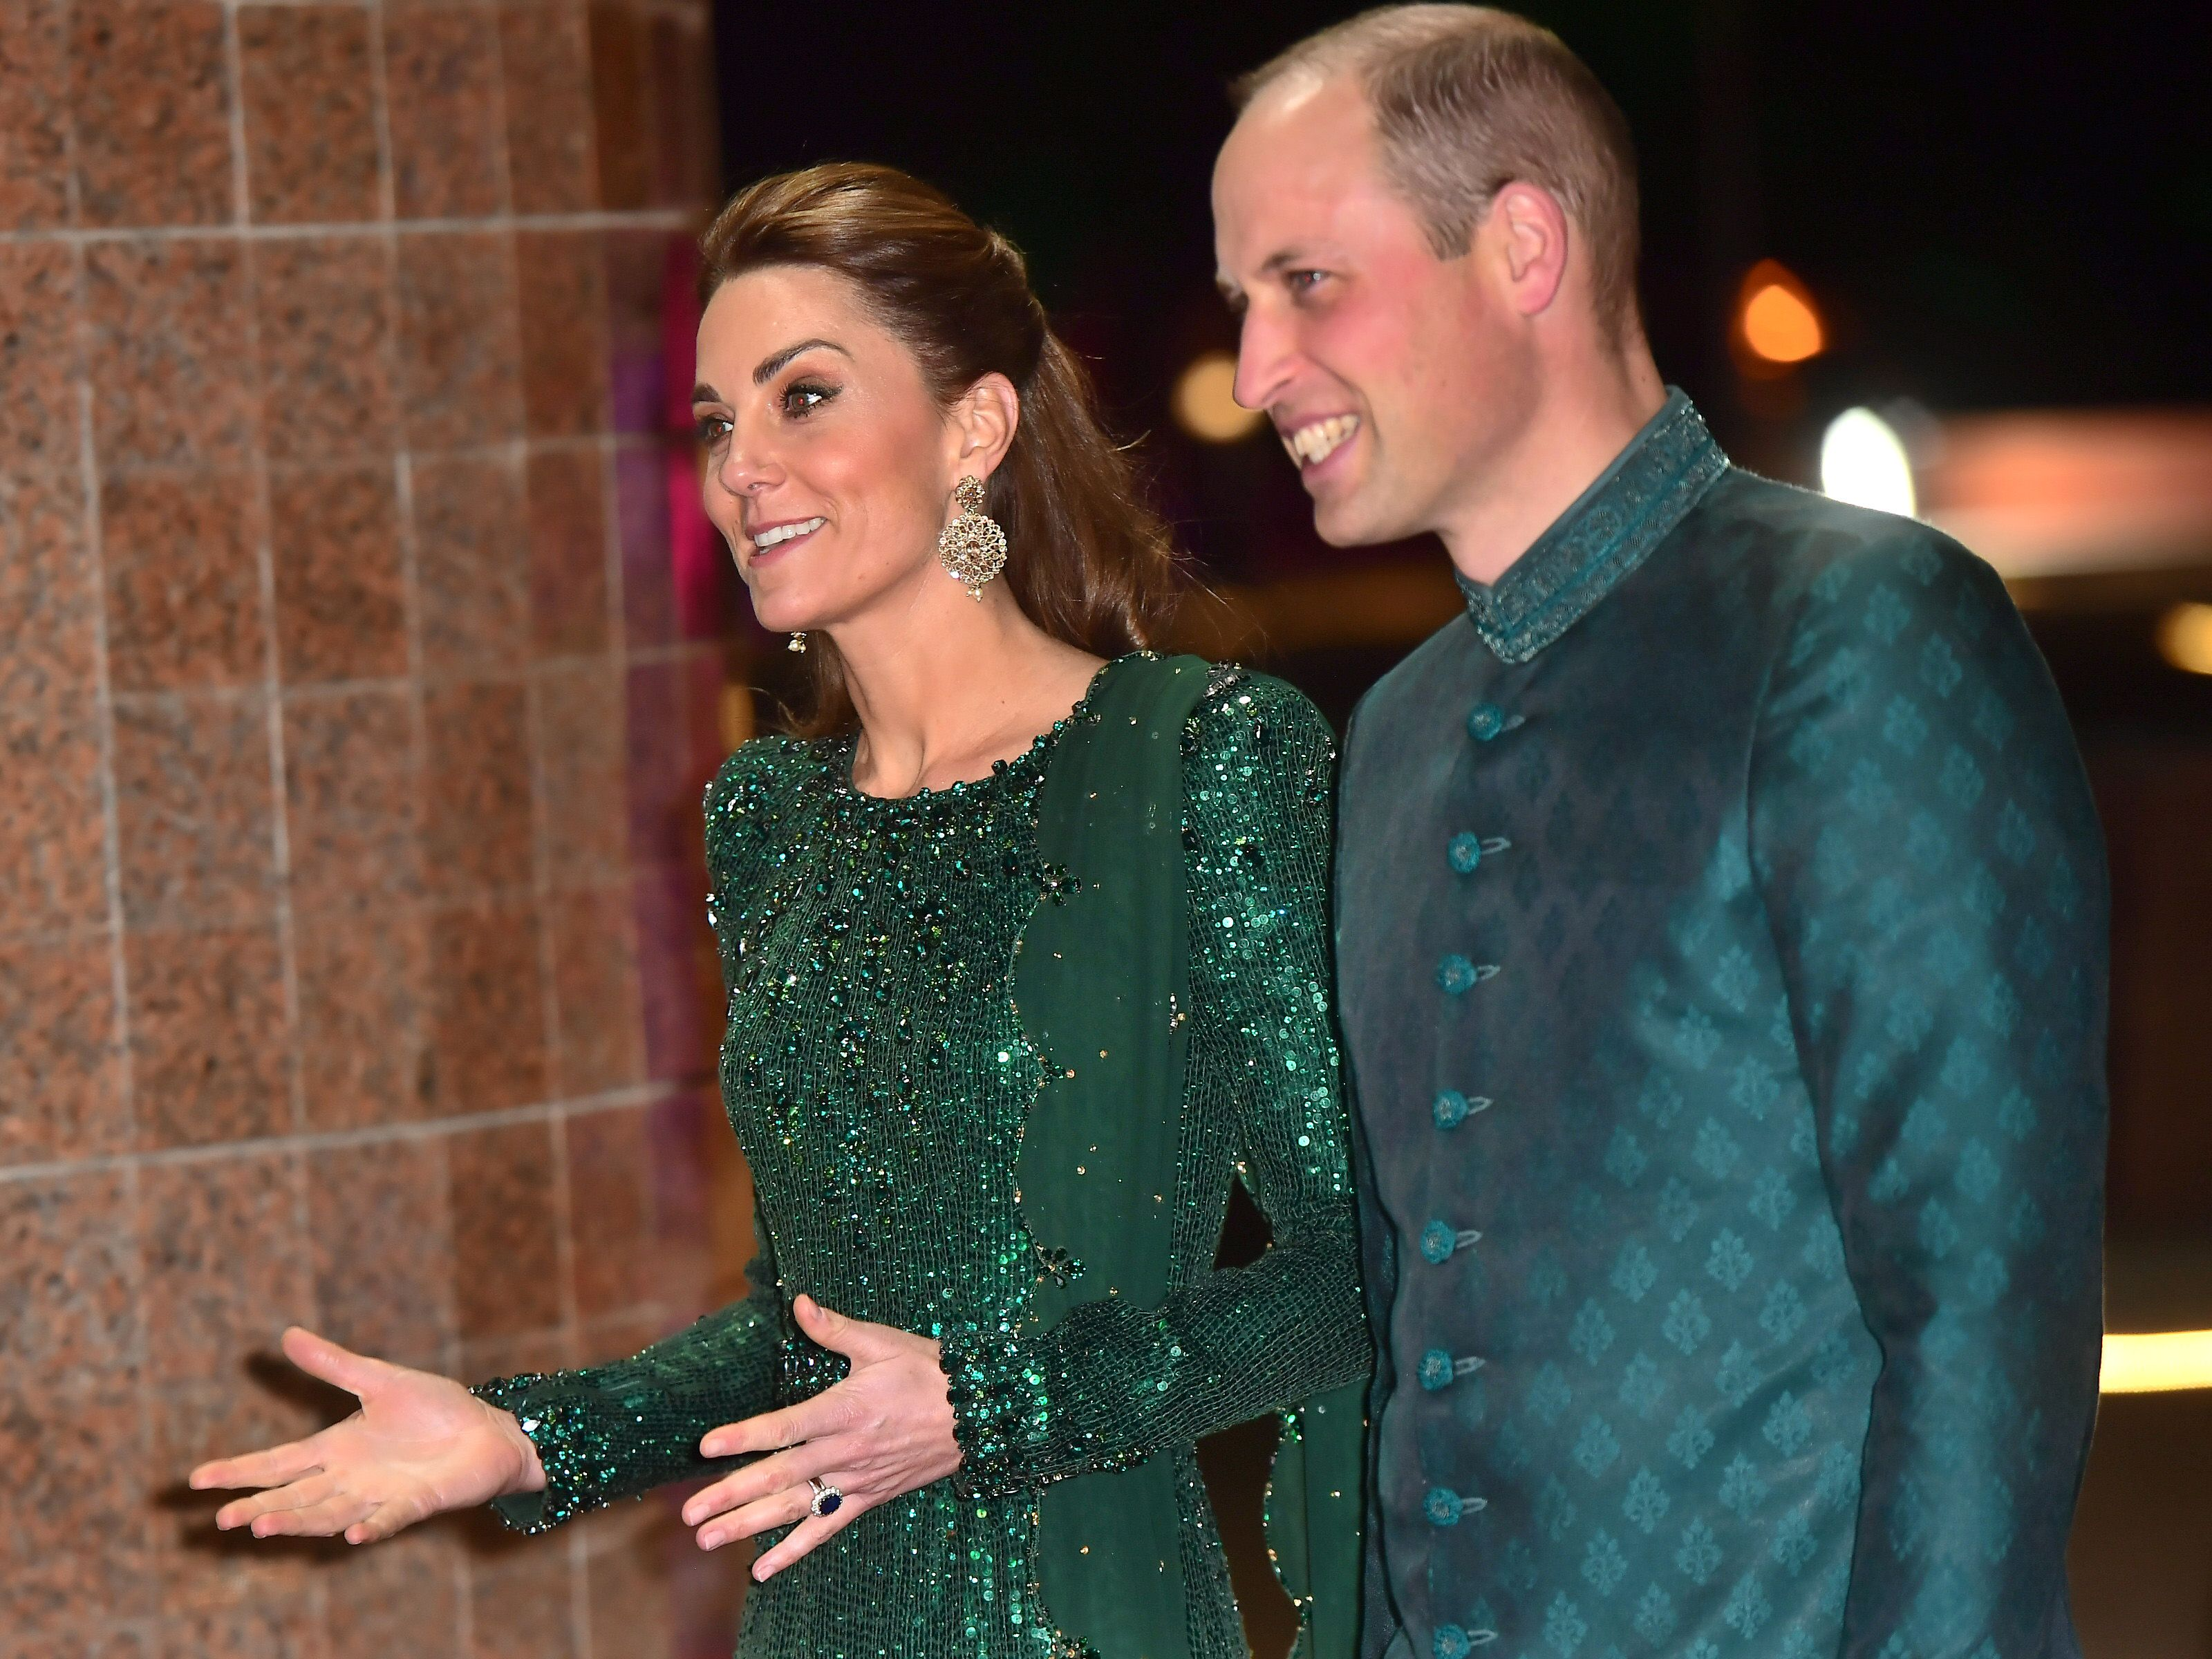 Kate Middleton stuns in glittering green evening gown on Pakistan visit